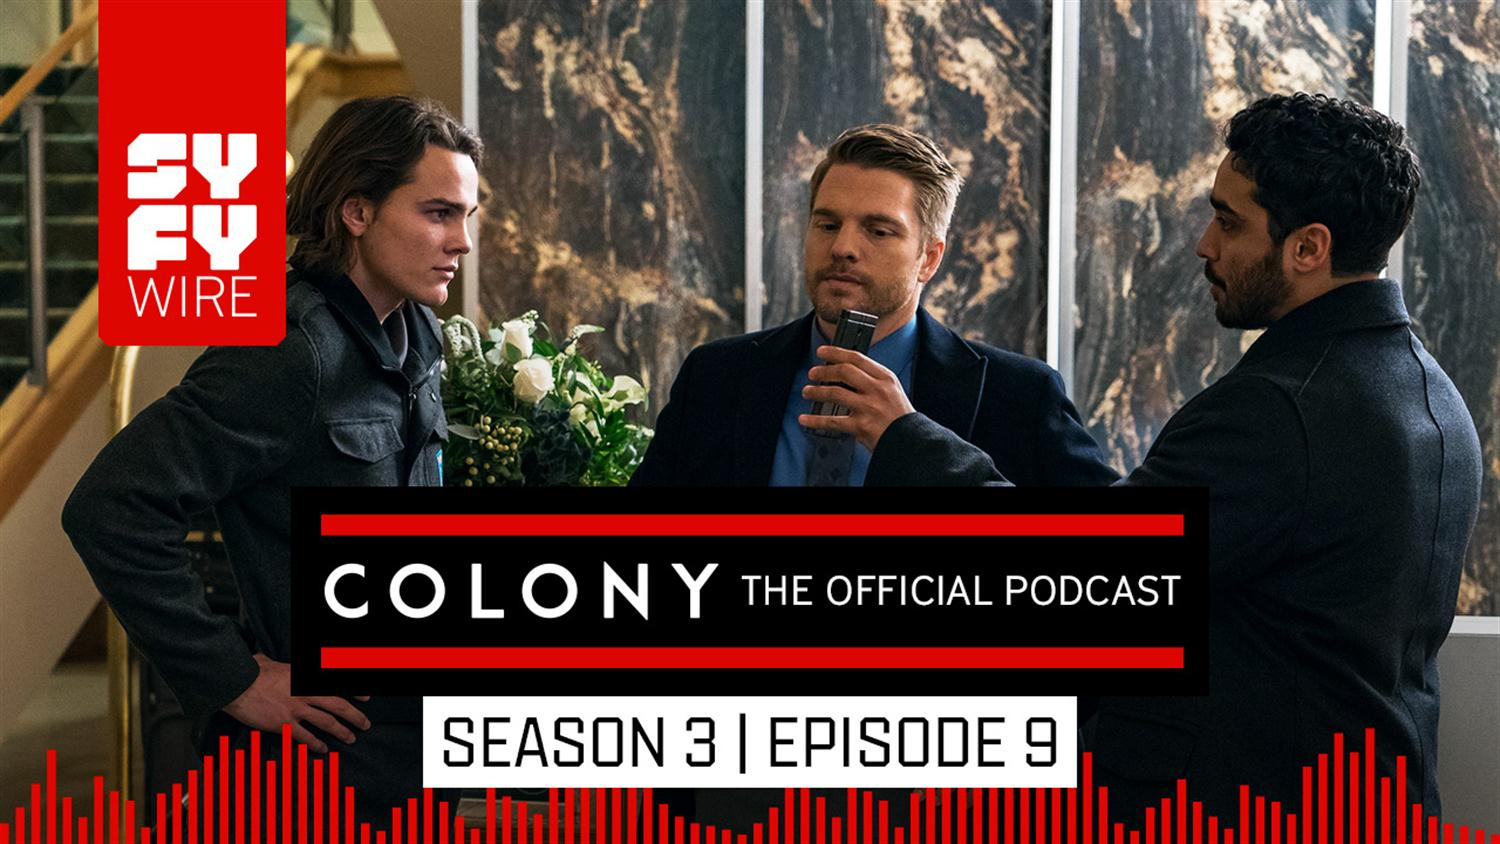 Colony The Official Podcast: Season 3, Episode 9